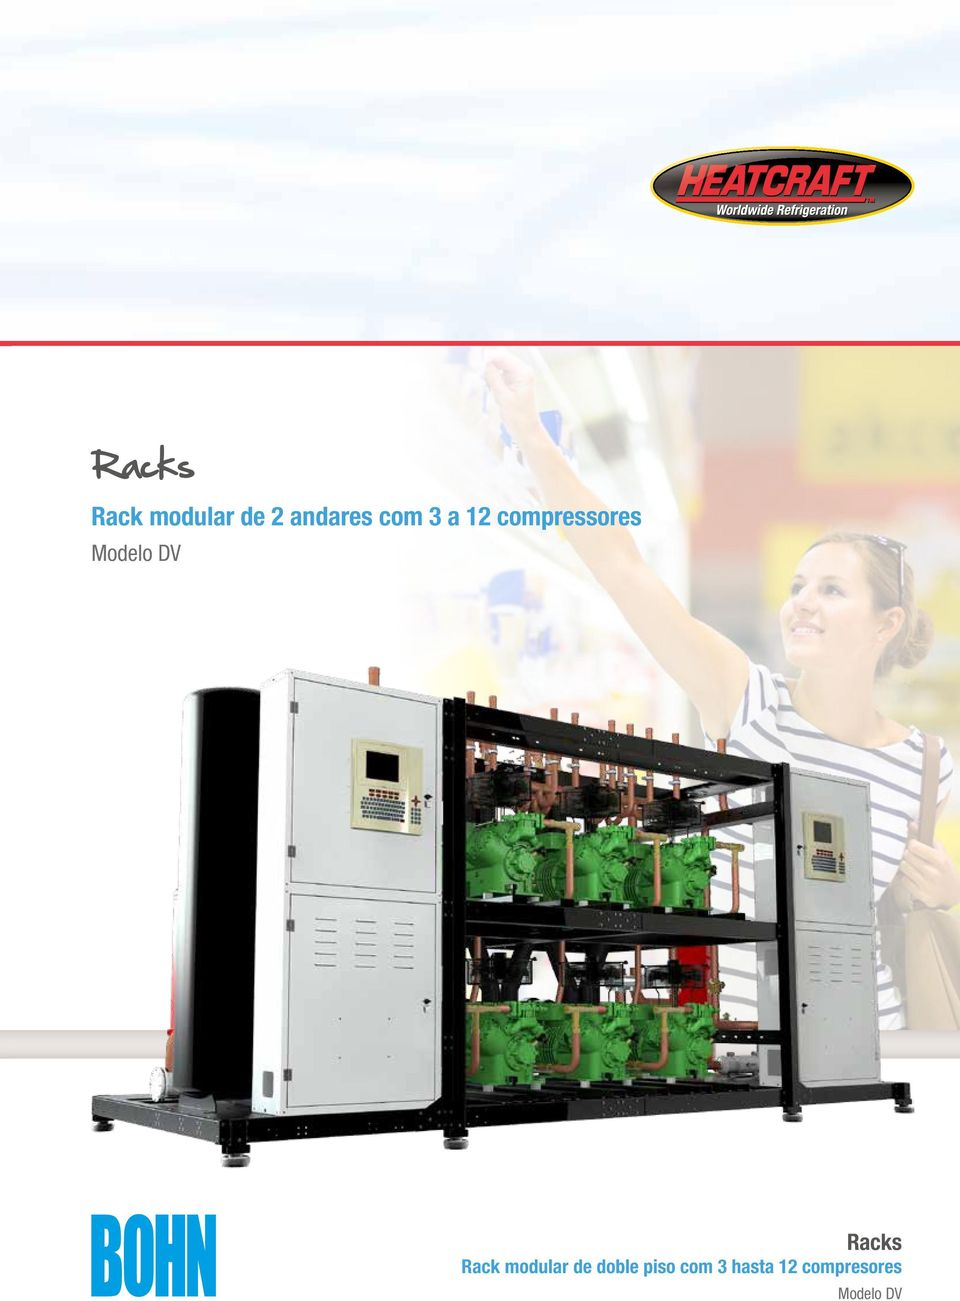 Racks Rack modular de doble piso